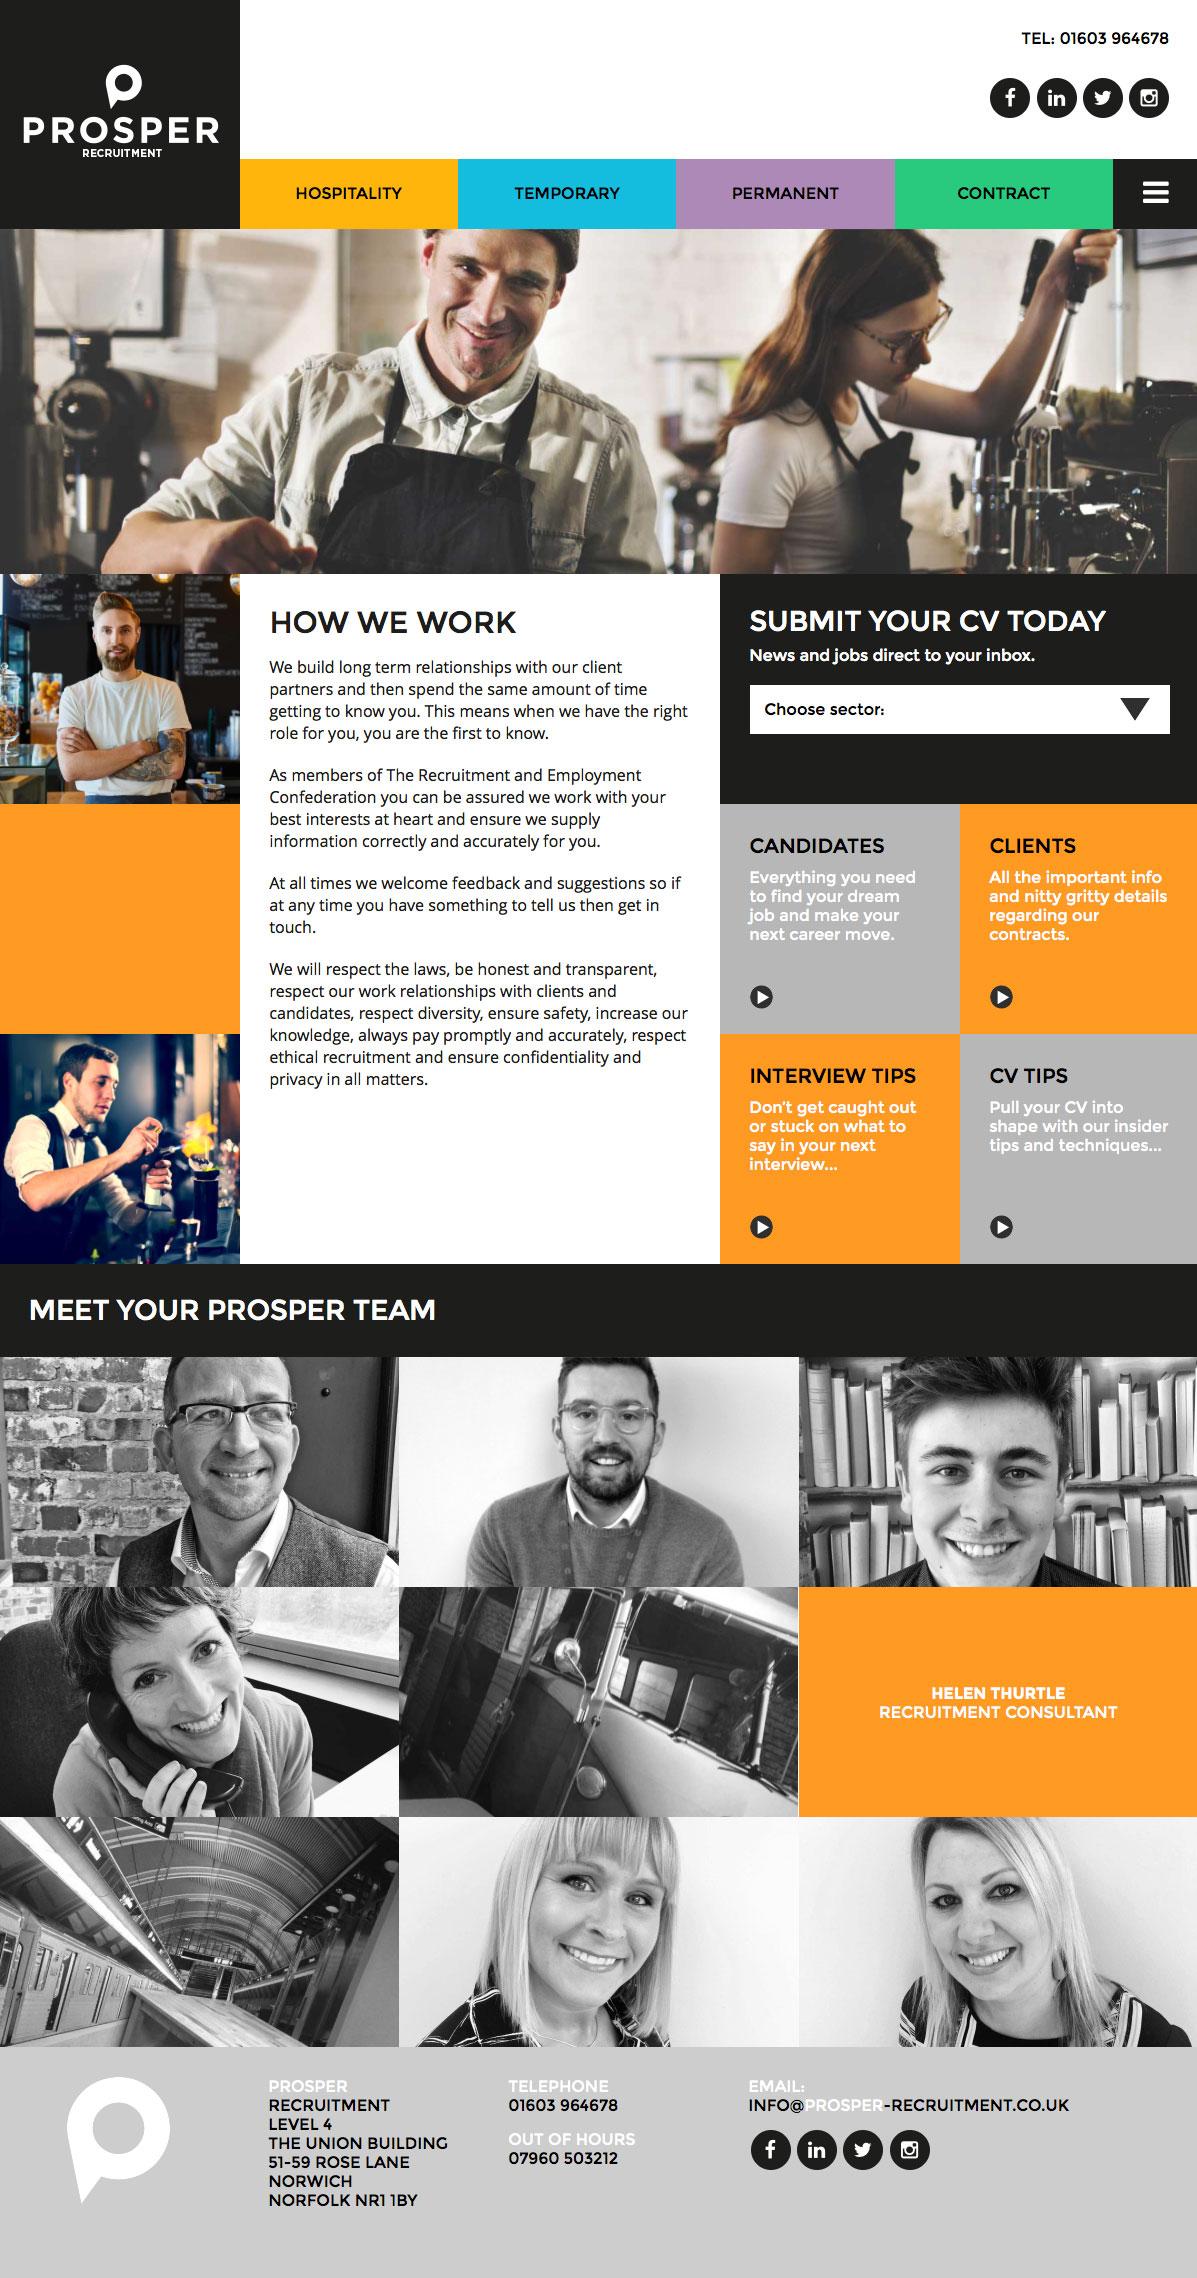 prosper-recruitment-agency-website-design-in-norwich.jpg